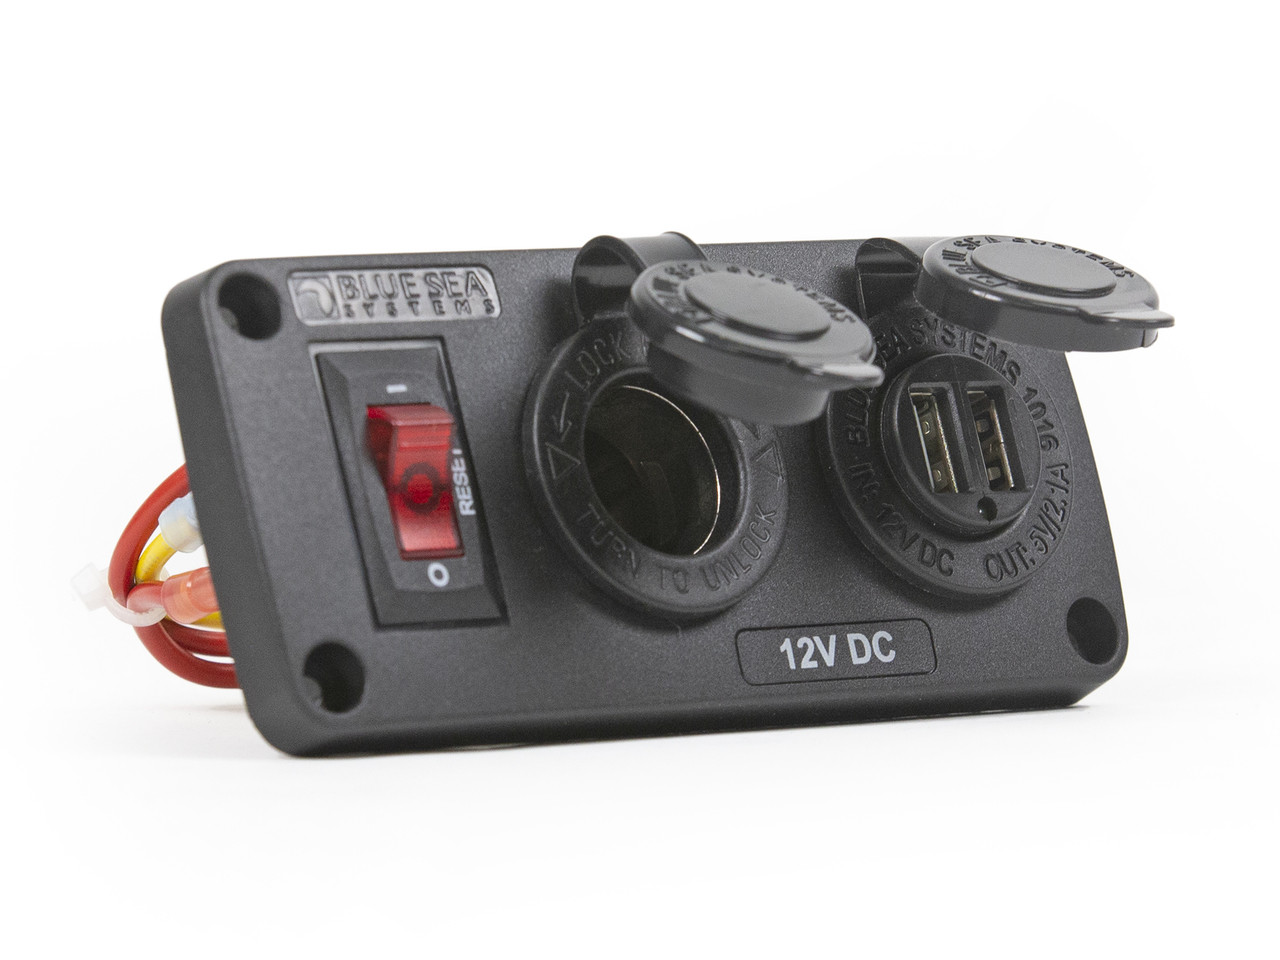 12V DC & Dual 2.1A USB Chargers